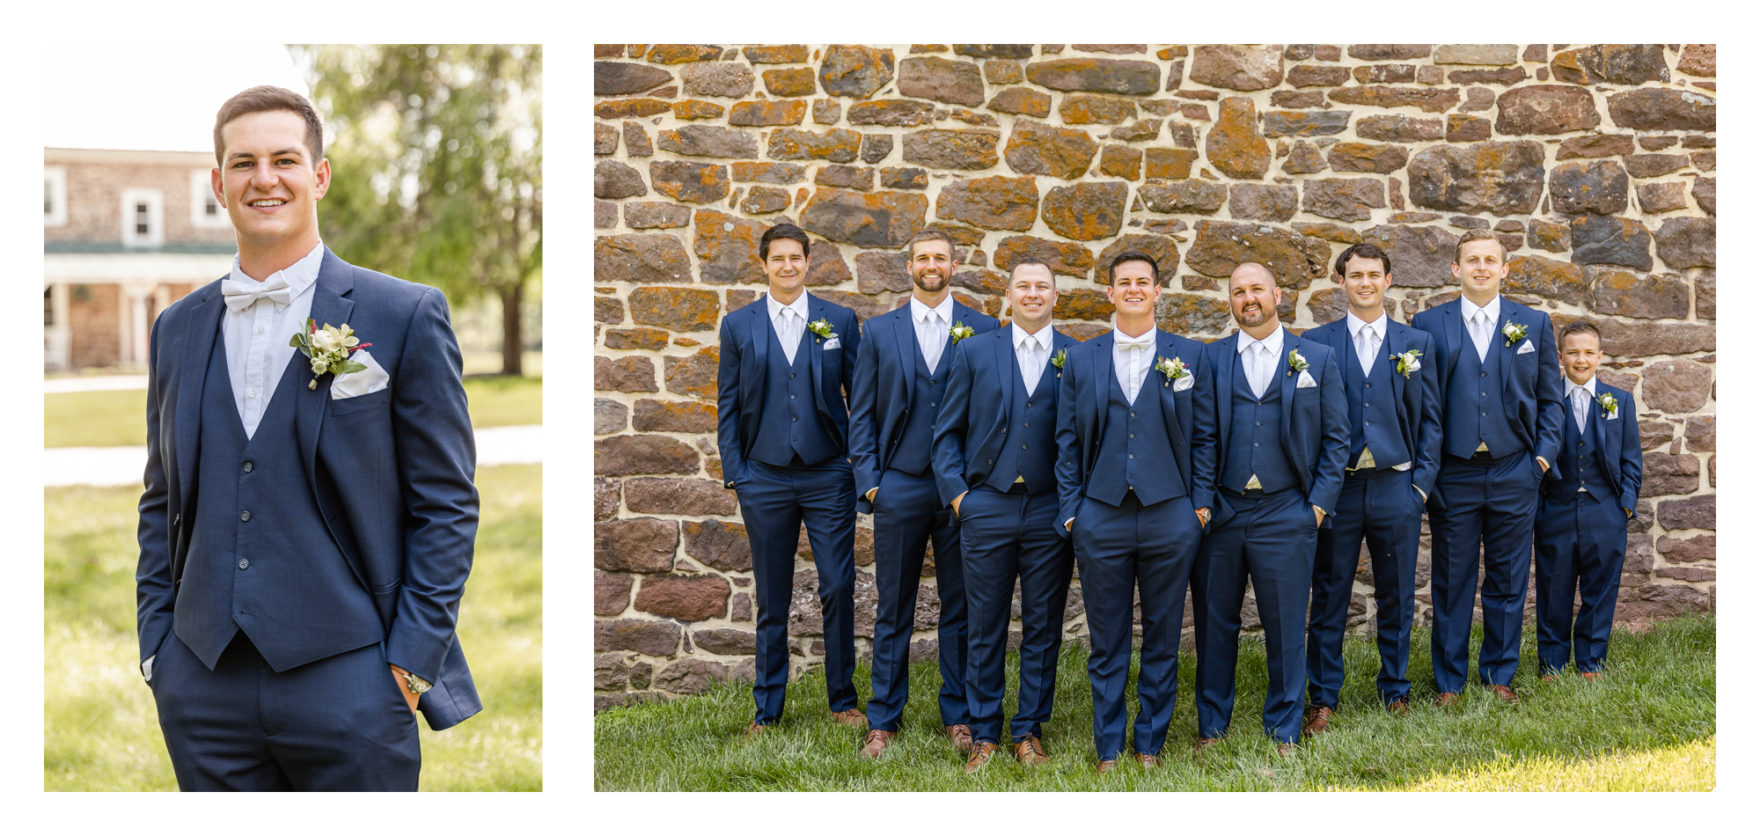 Summer wedding at a private residence farm in Westminster Carroll County Maryland. Cicadas, cows and dogs at the wedding. Pond view groom and groomsmen portraits